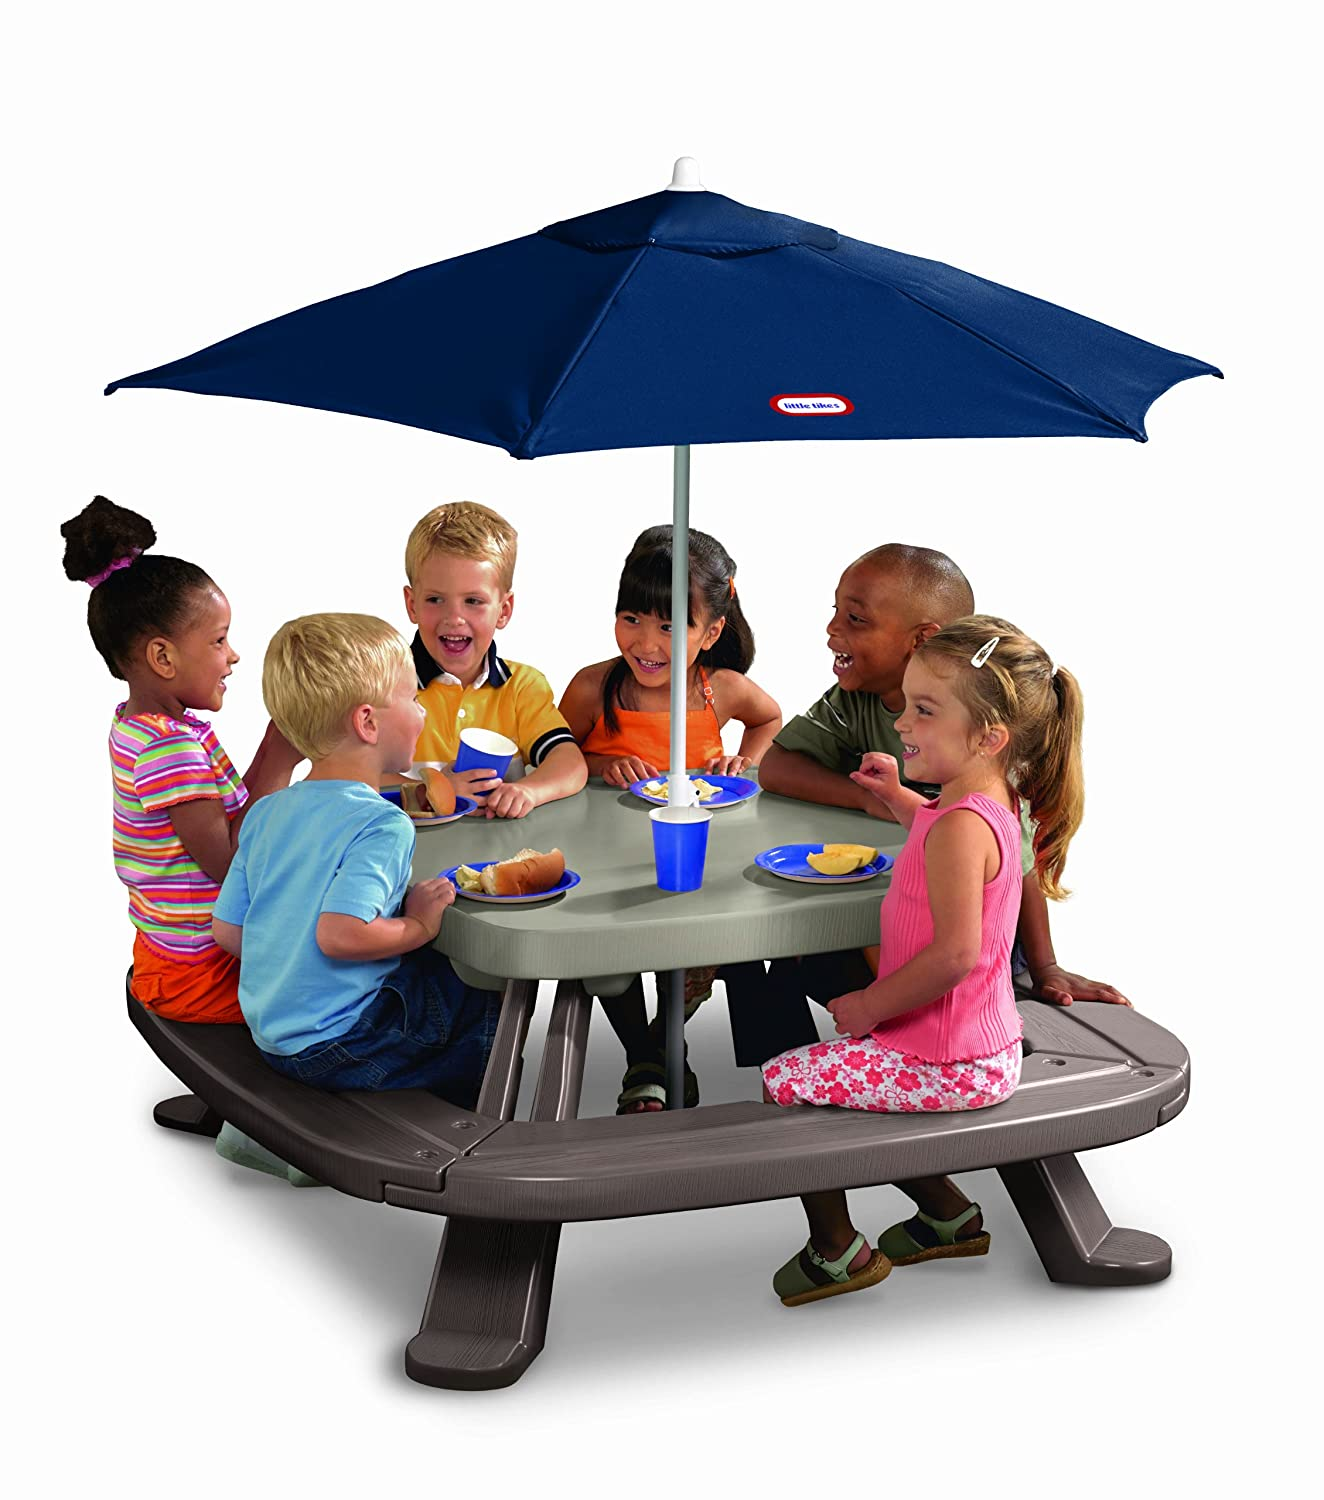 picnic tables for kids. Black Bedroom Furniture Sets. Home Design Ideas